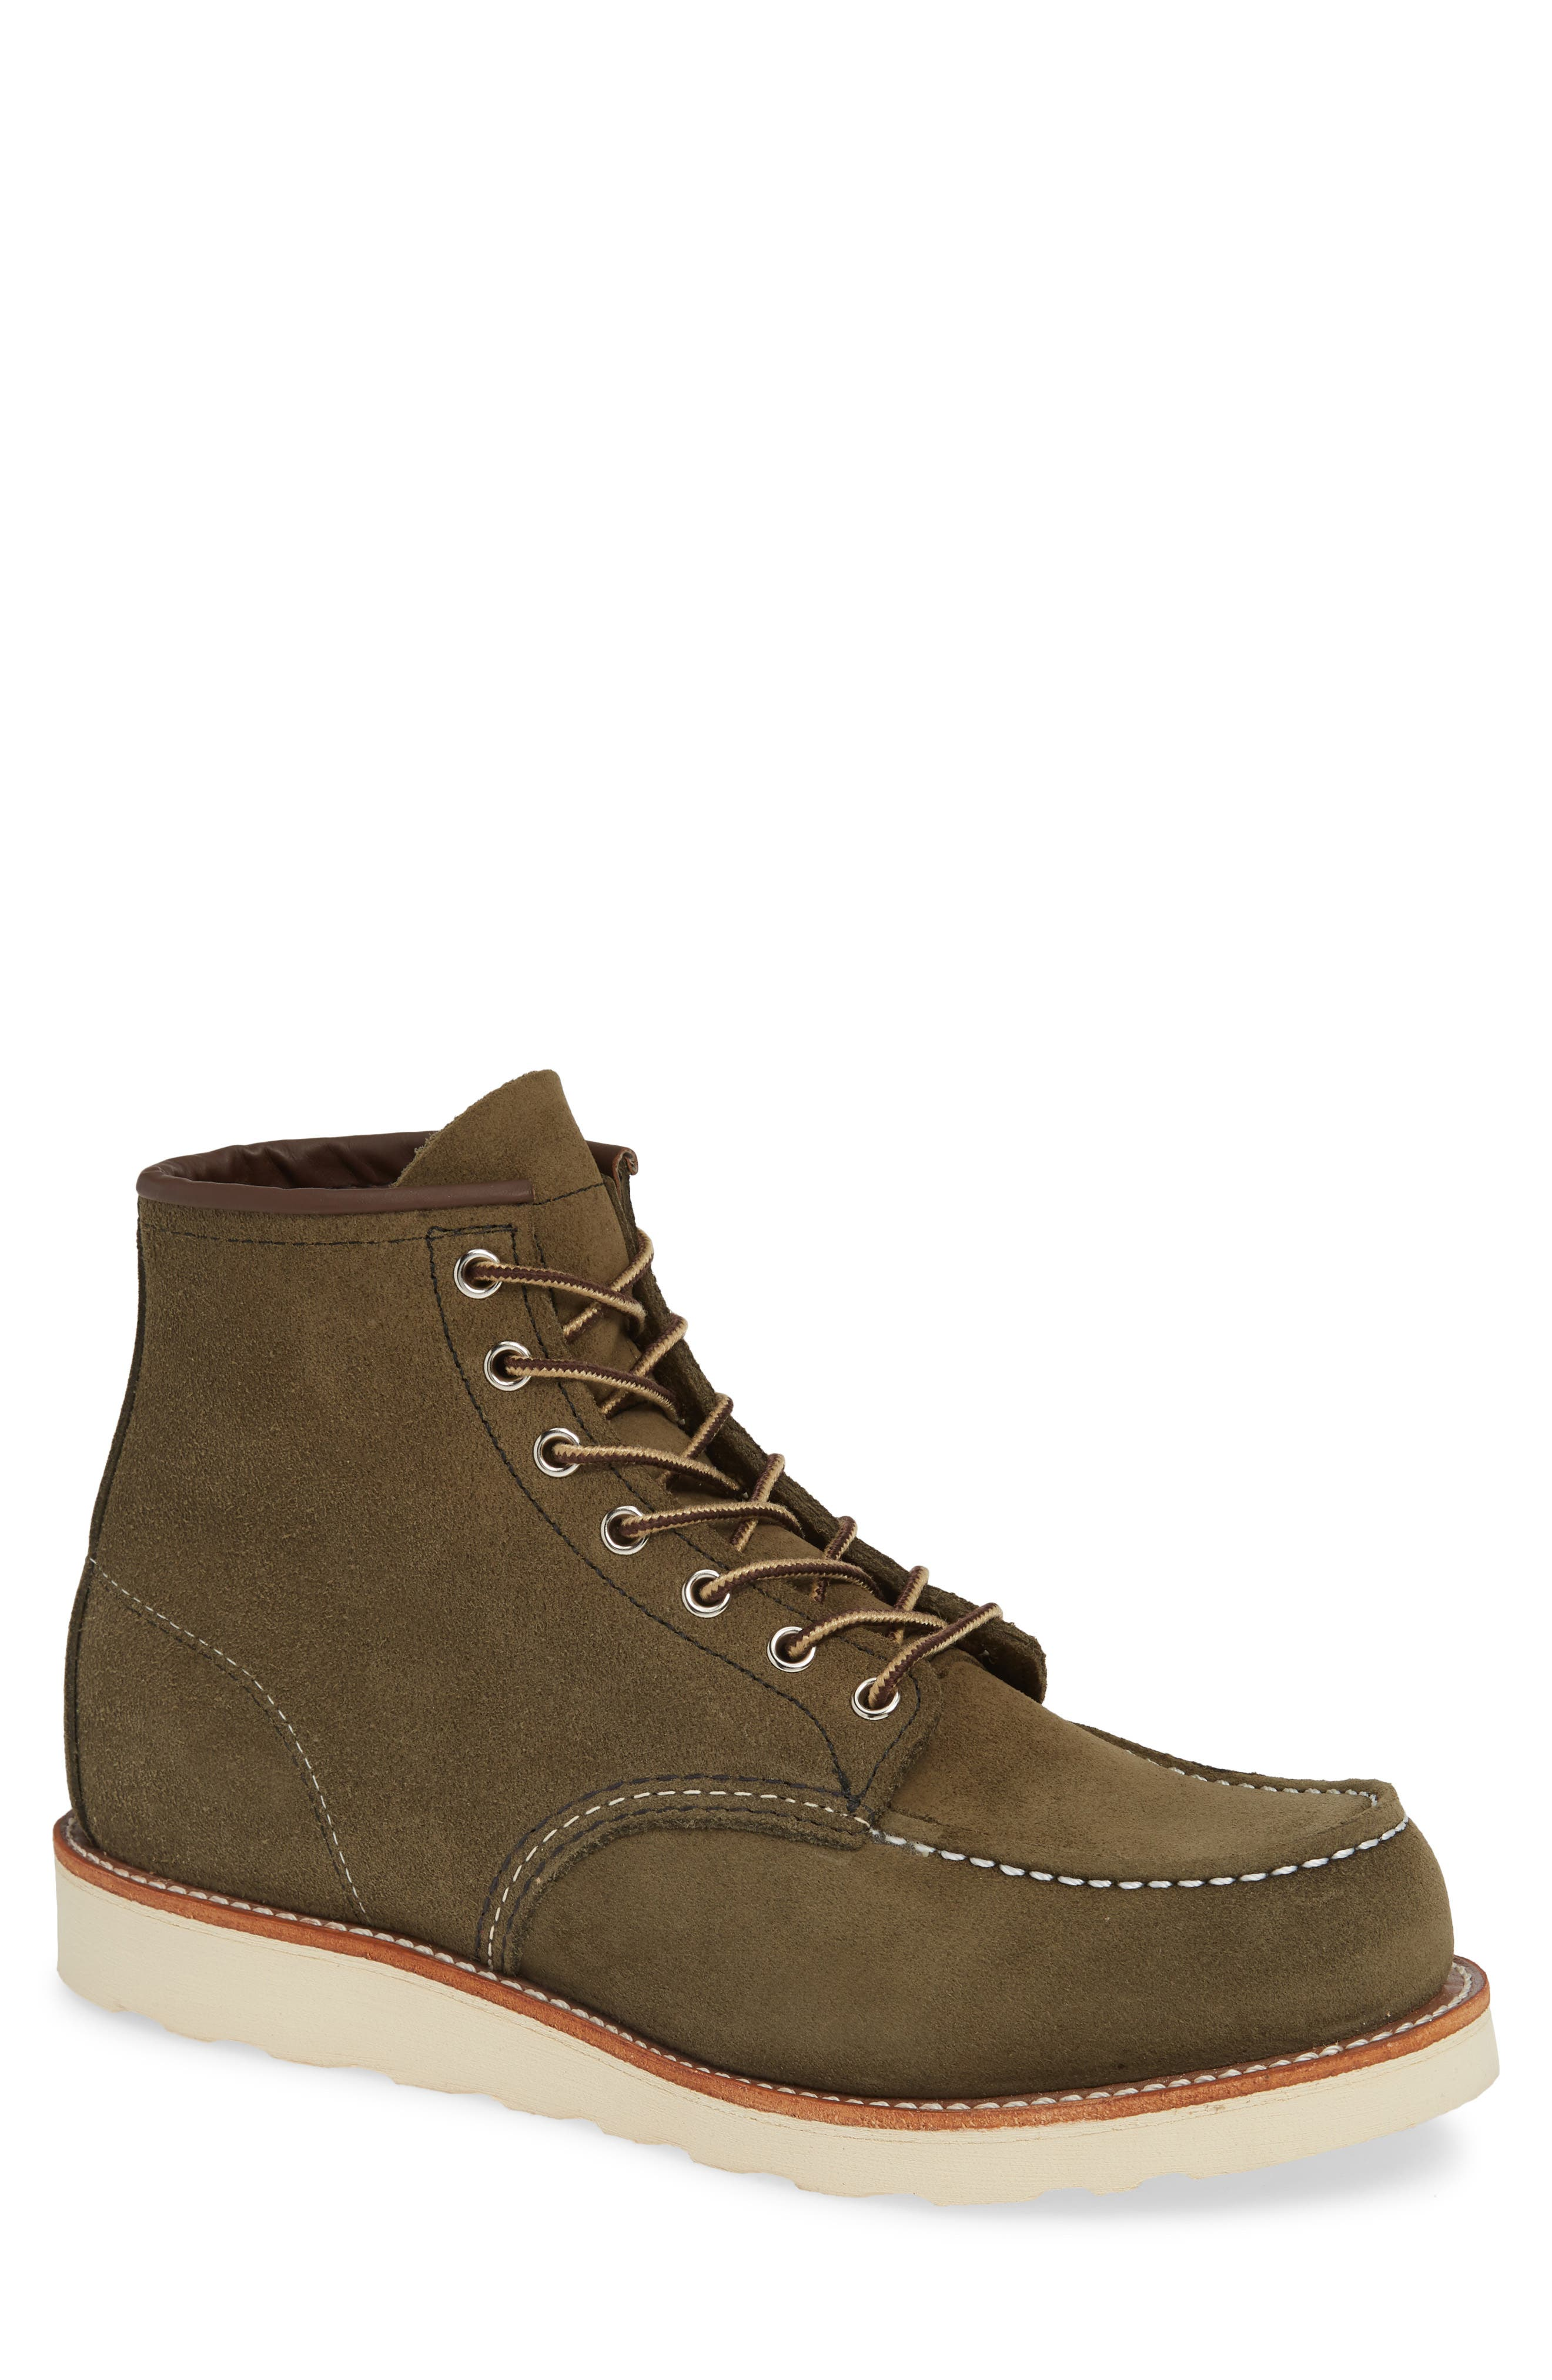 RED WING, 6 Inch Moc Toe Boot, Main thumbnail 1, color, LODEN ABILENE LEATHER